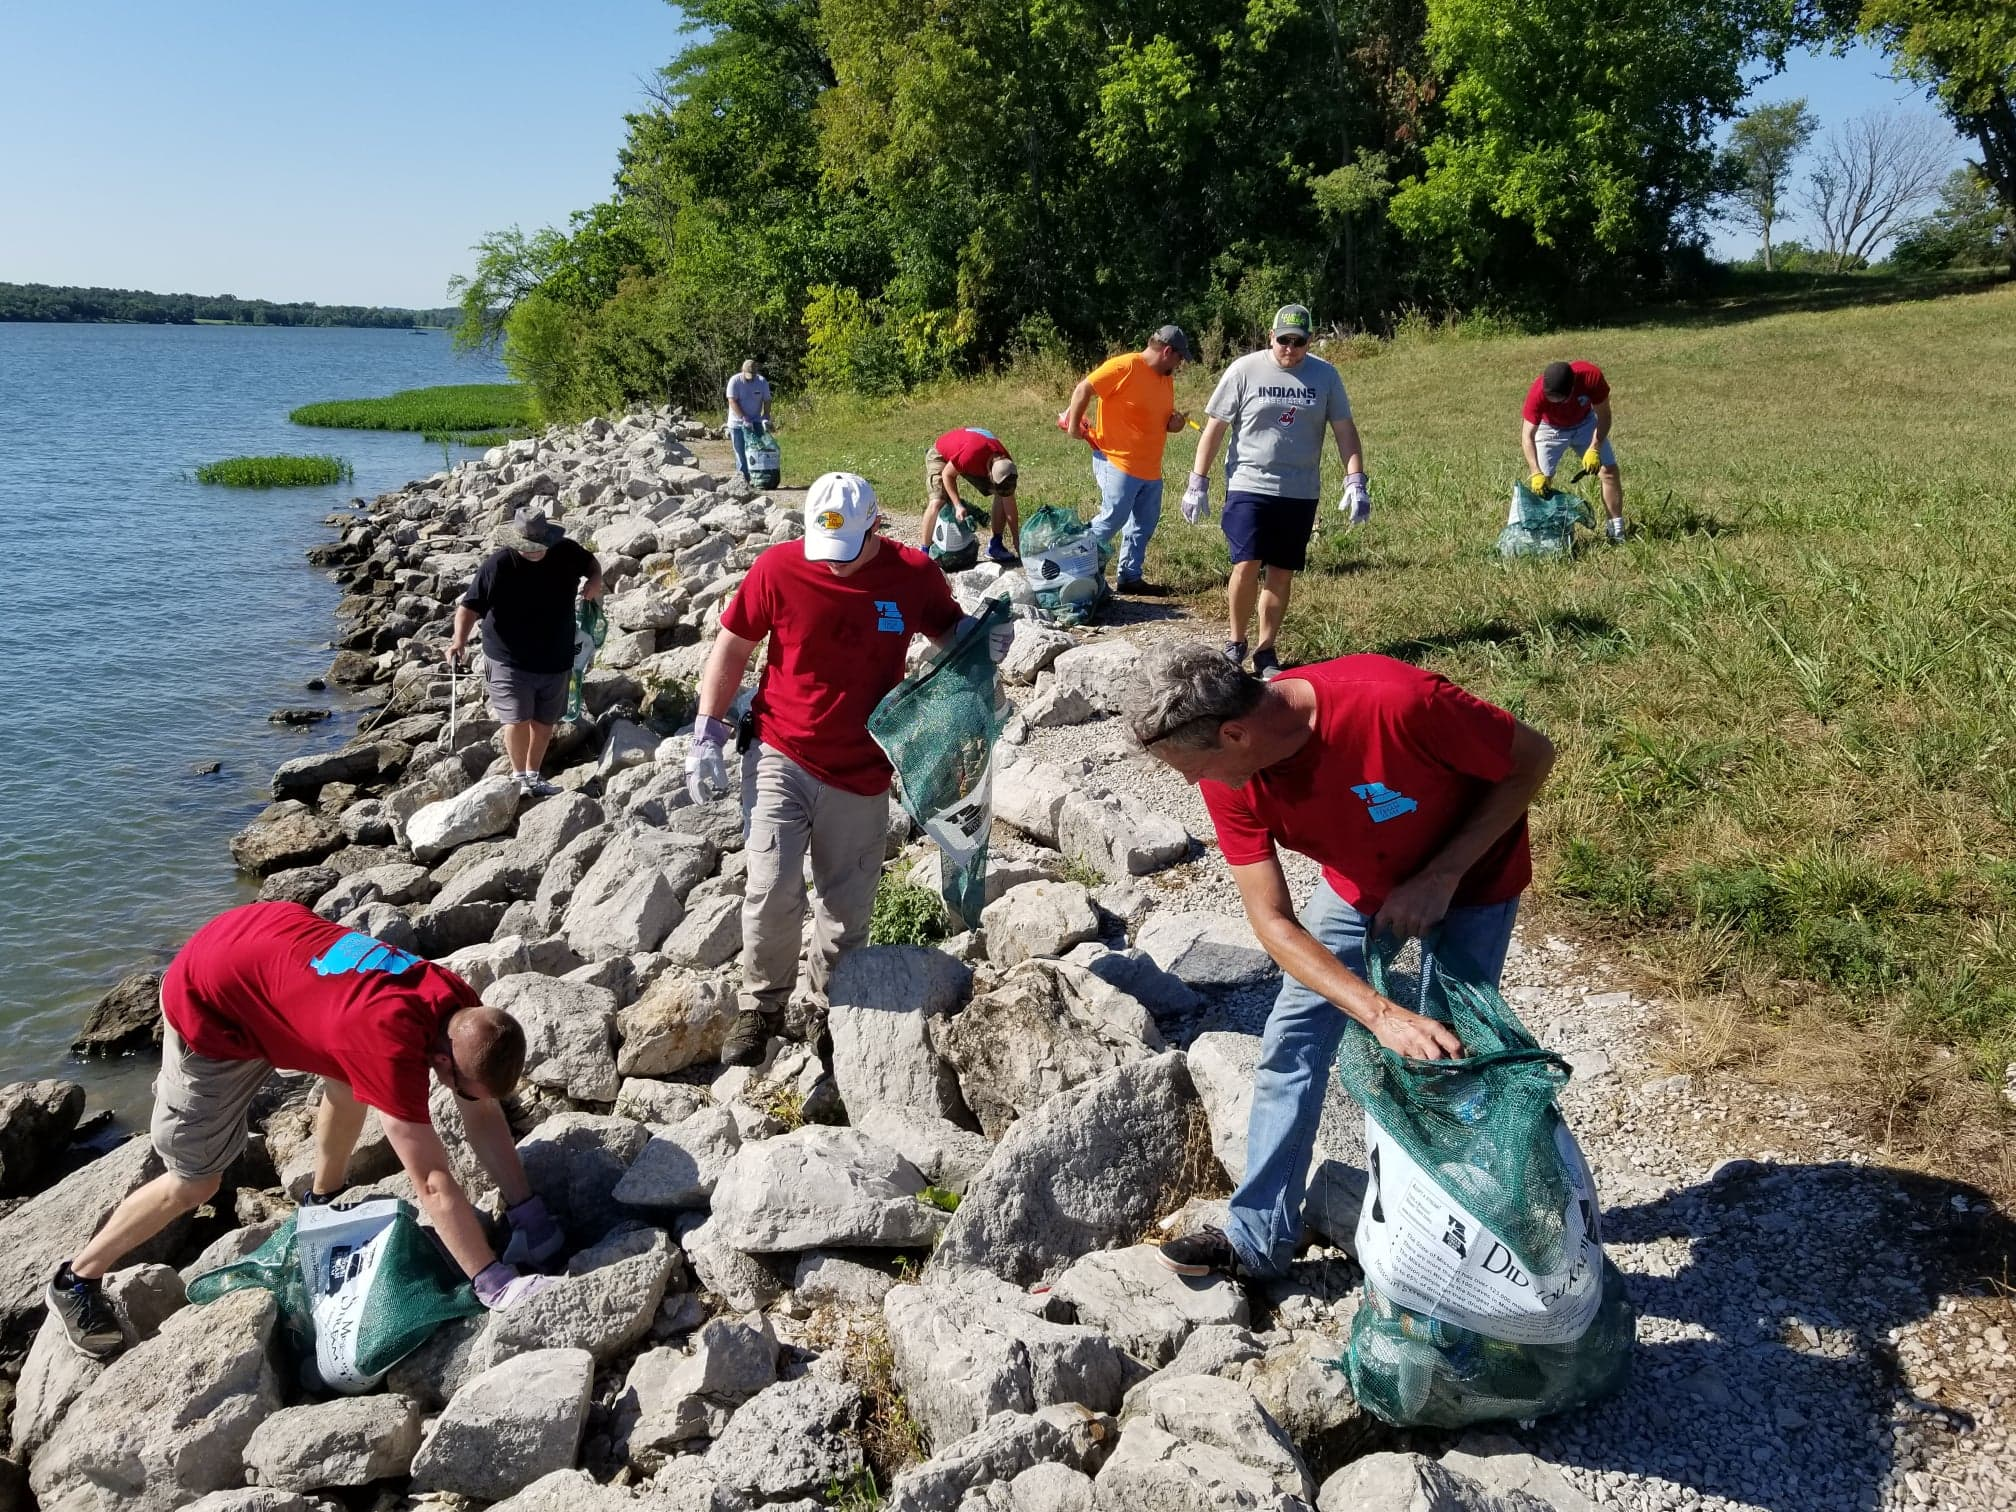 Lee's Summit Area Fishing FB group helps clean up around Longview Lake